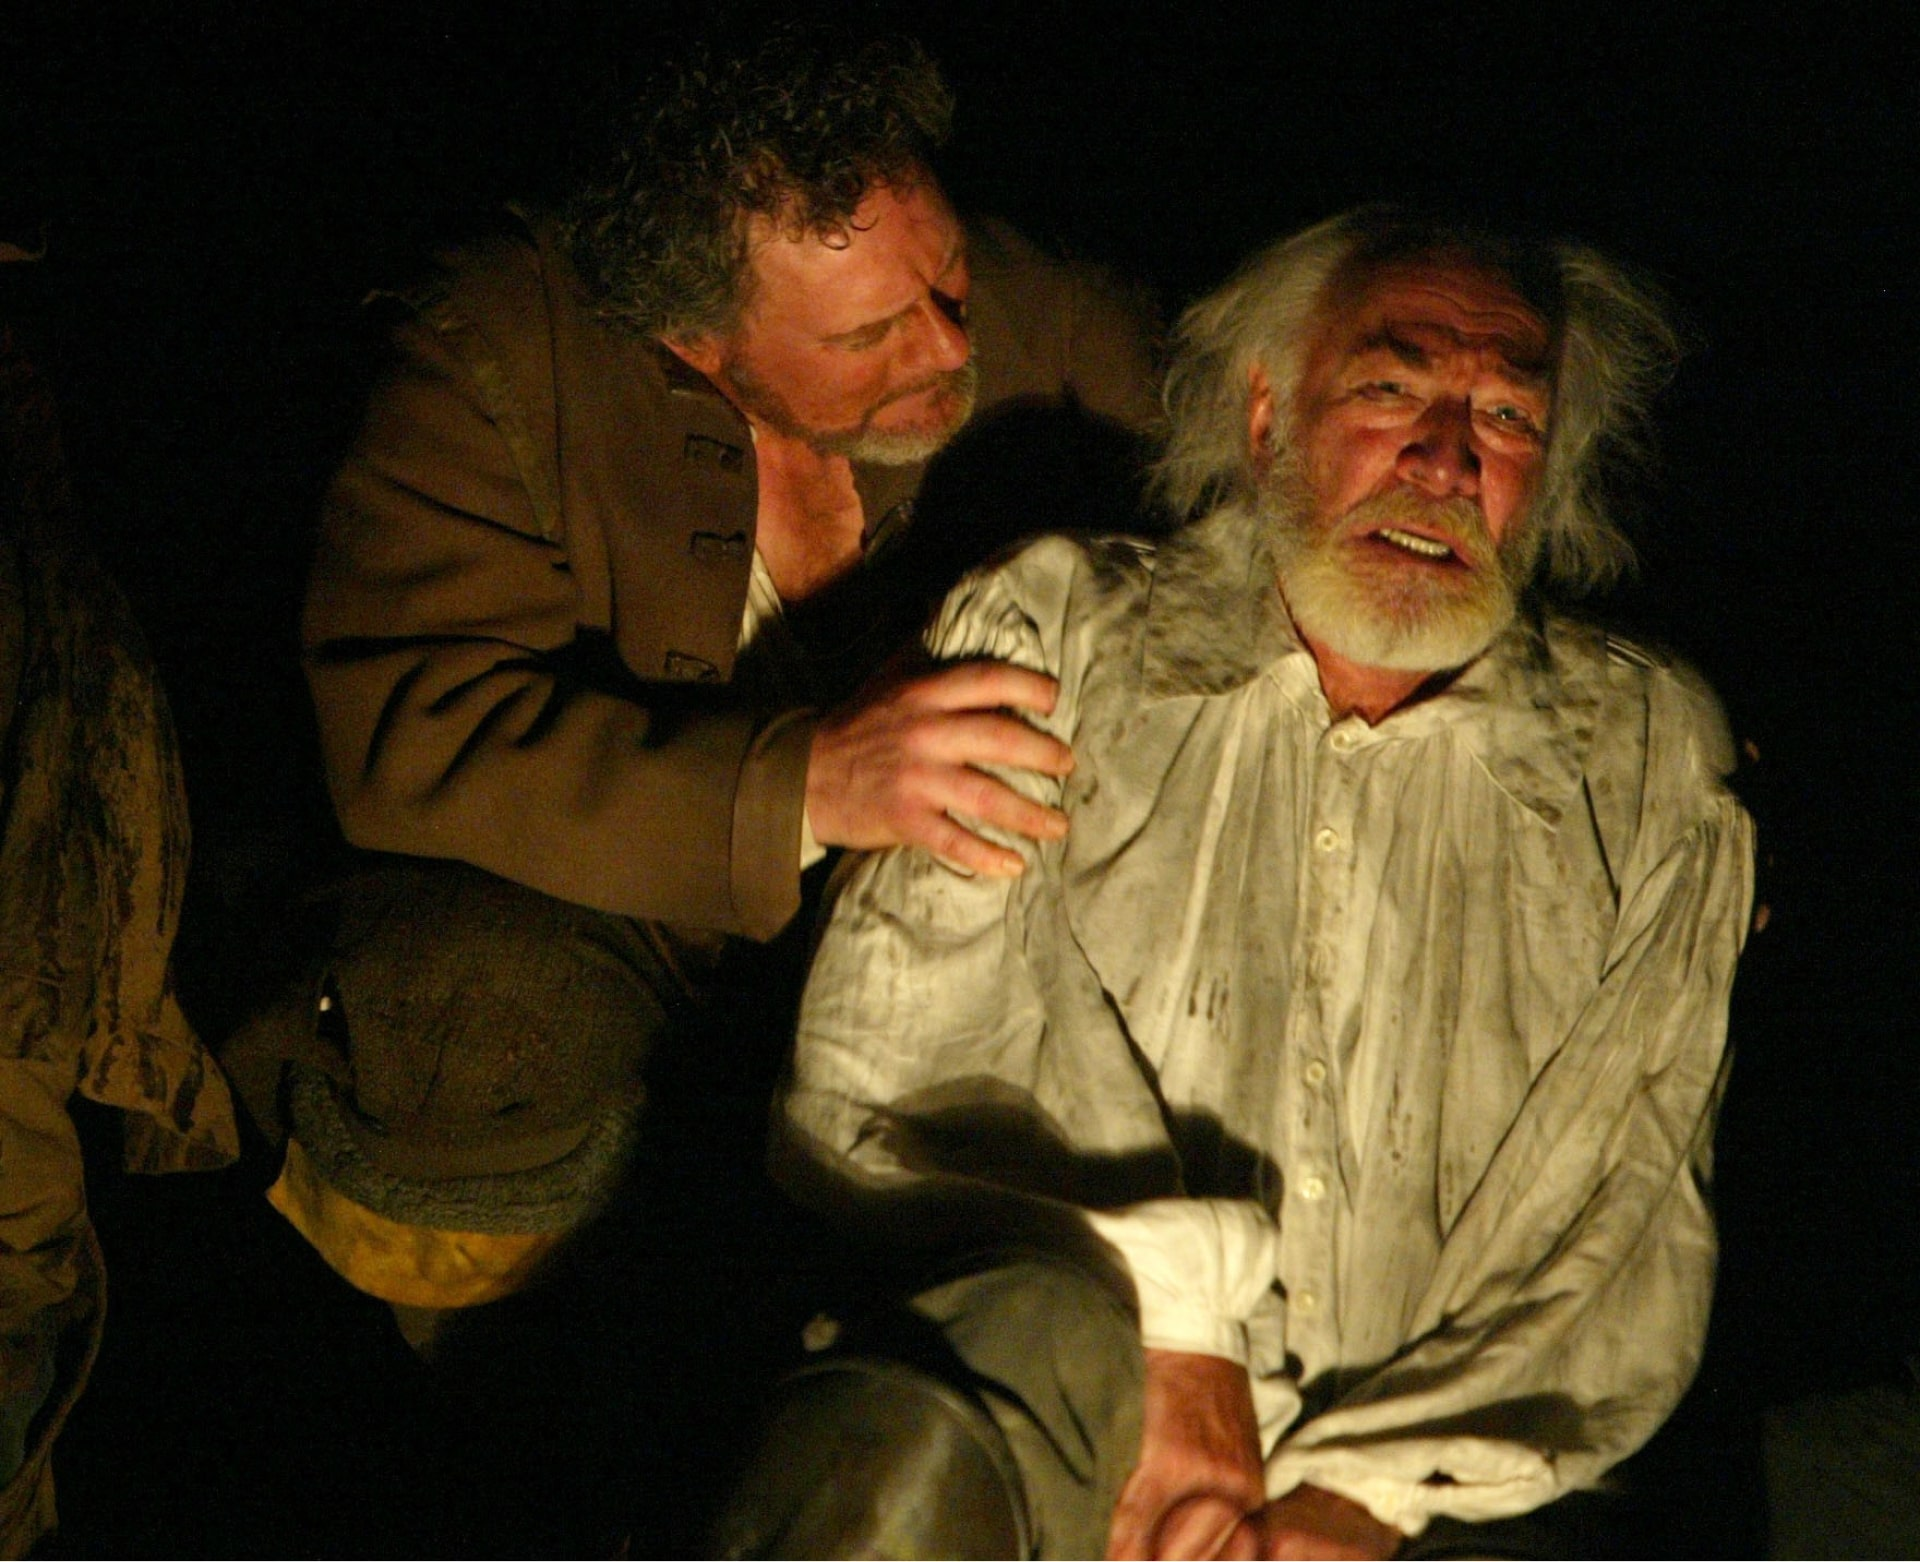 Bearded old king is consoled by scruffy man lit by lantern.